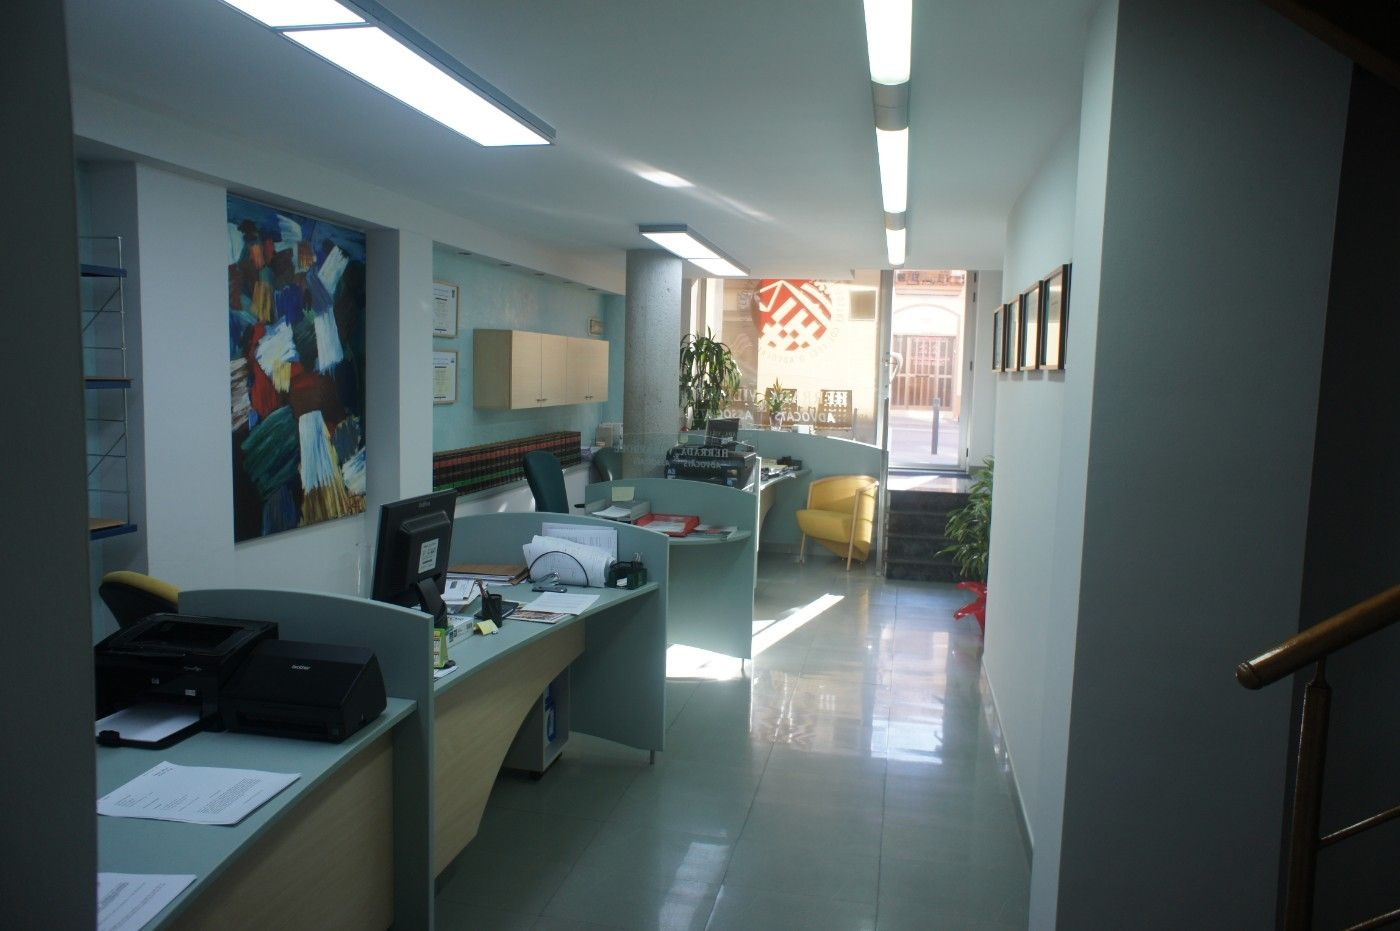 Local Comercial  Centro. Local en venta, céntrico